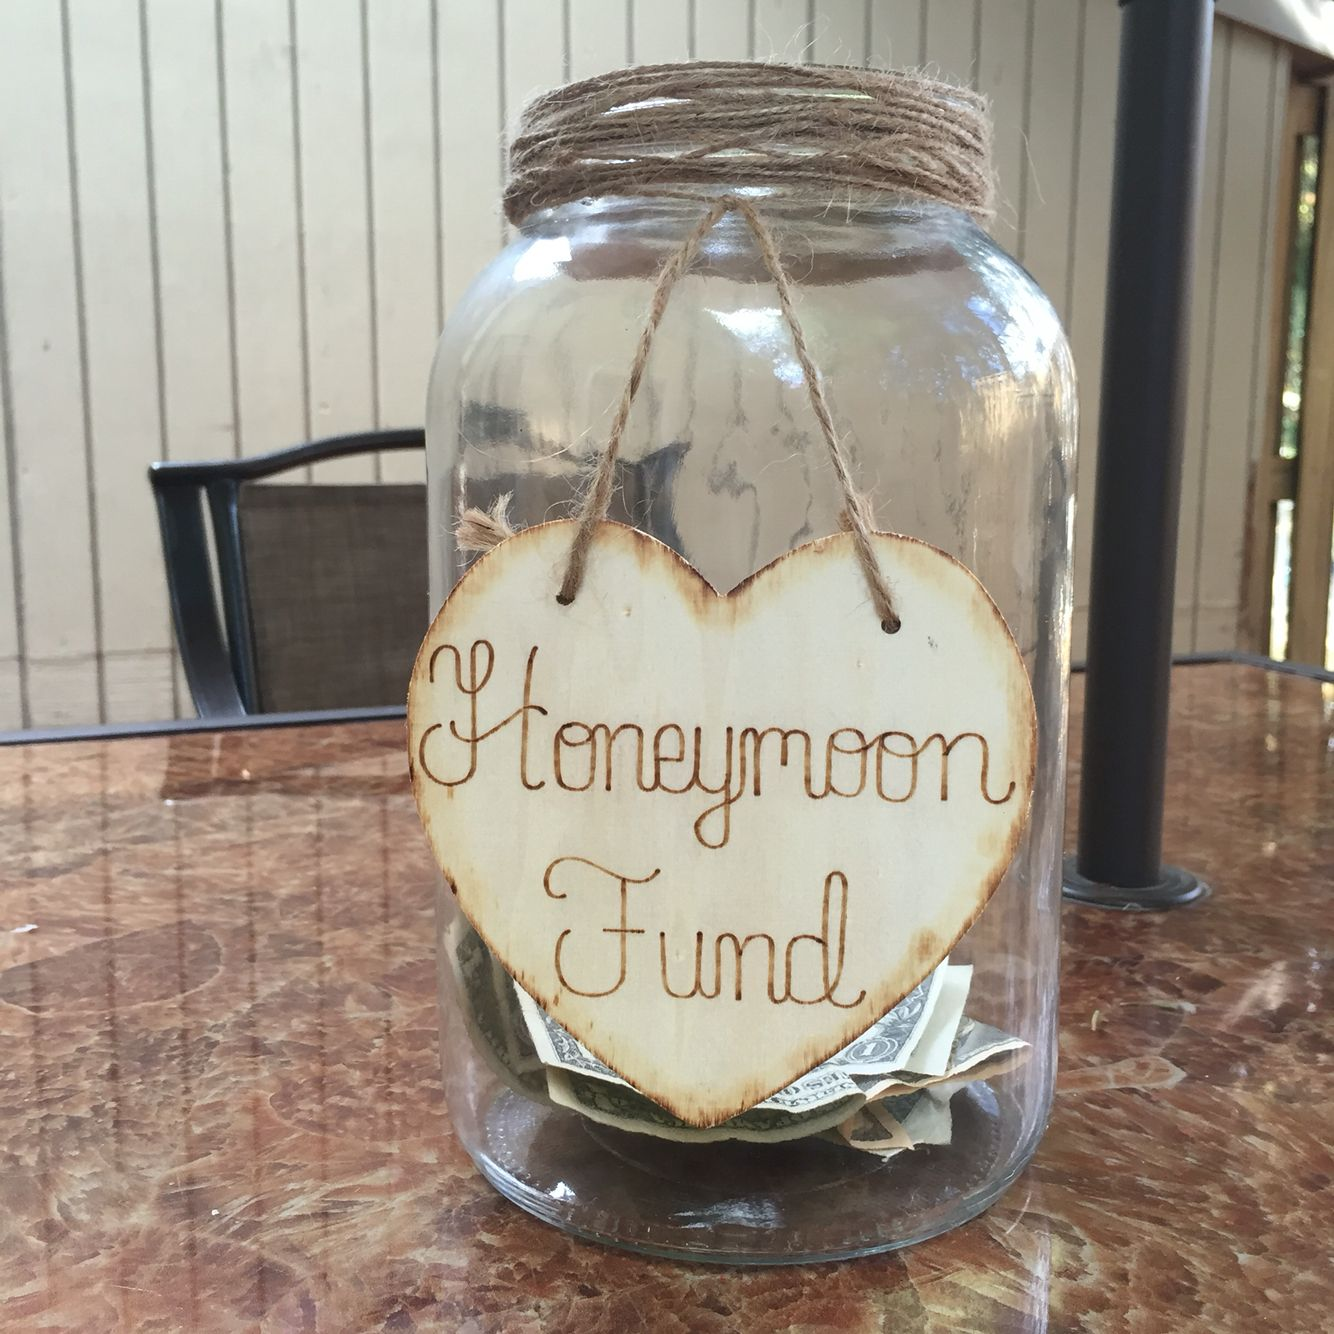 Honeymoon fund created with a mason jar sign was ordered for Cool money jars